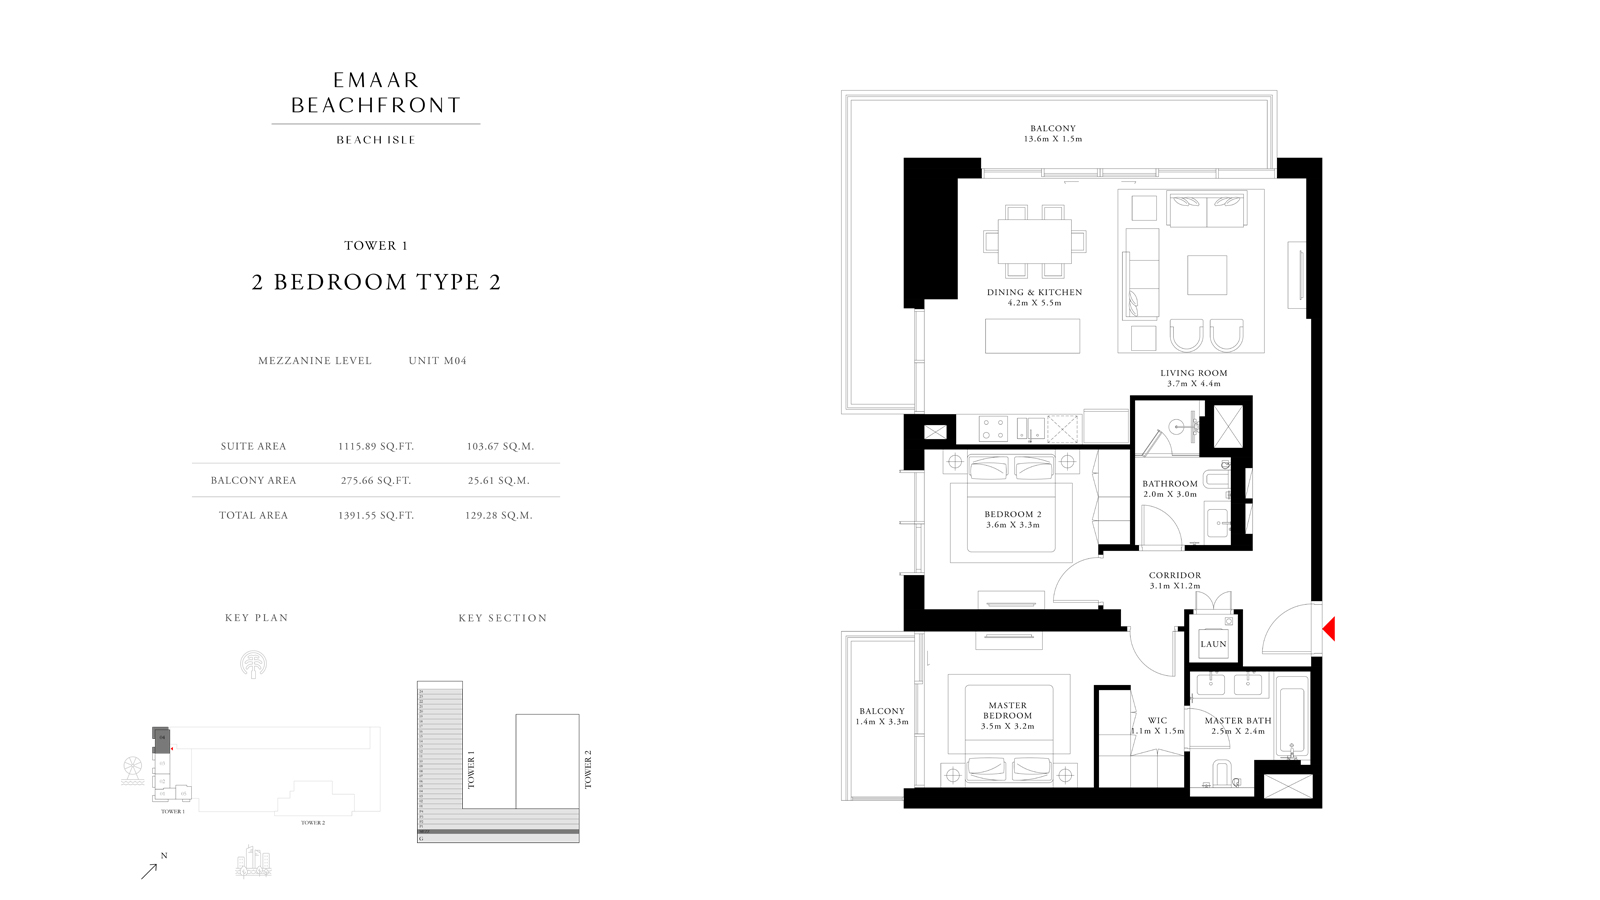 2 Bedroom Type 2 Tower 1, Size 1391    sq. ft.